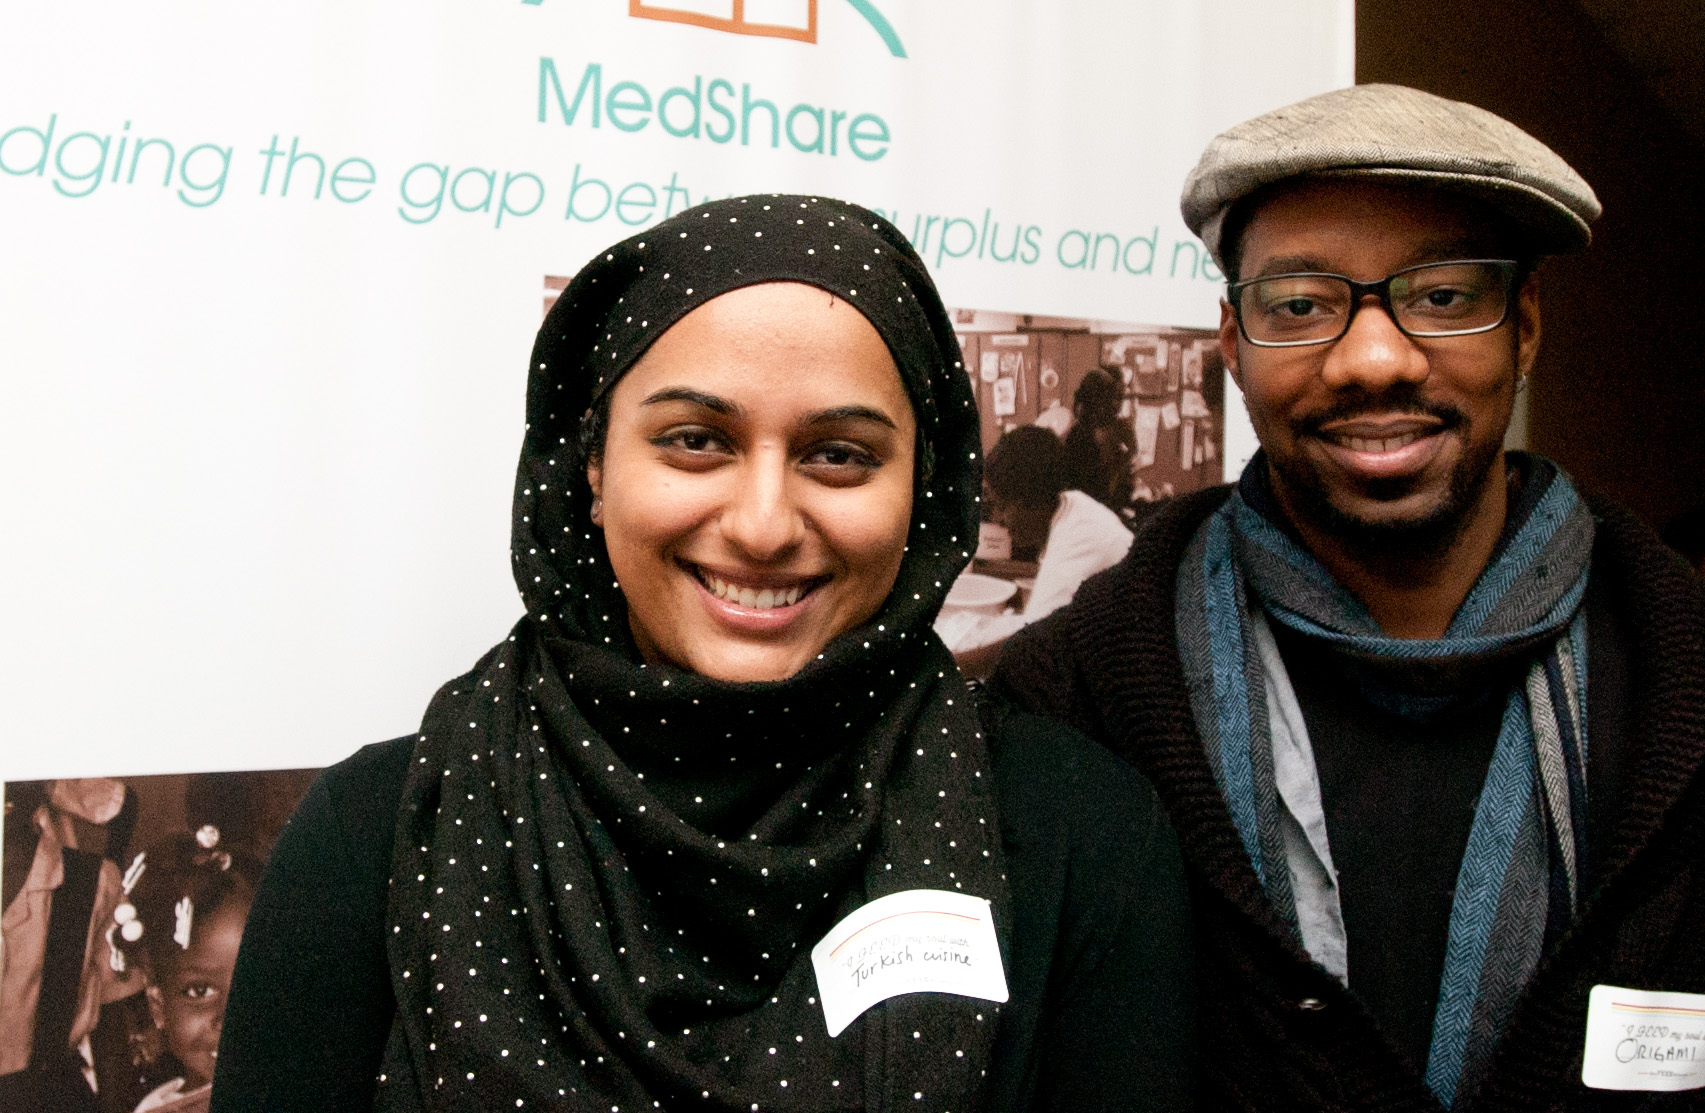 MEET Clint and Sana: interfaith workers and medical supply crafters